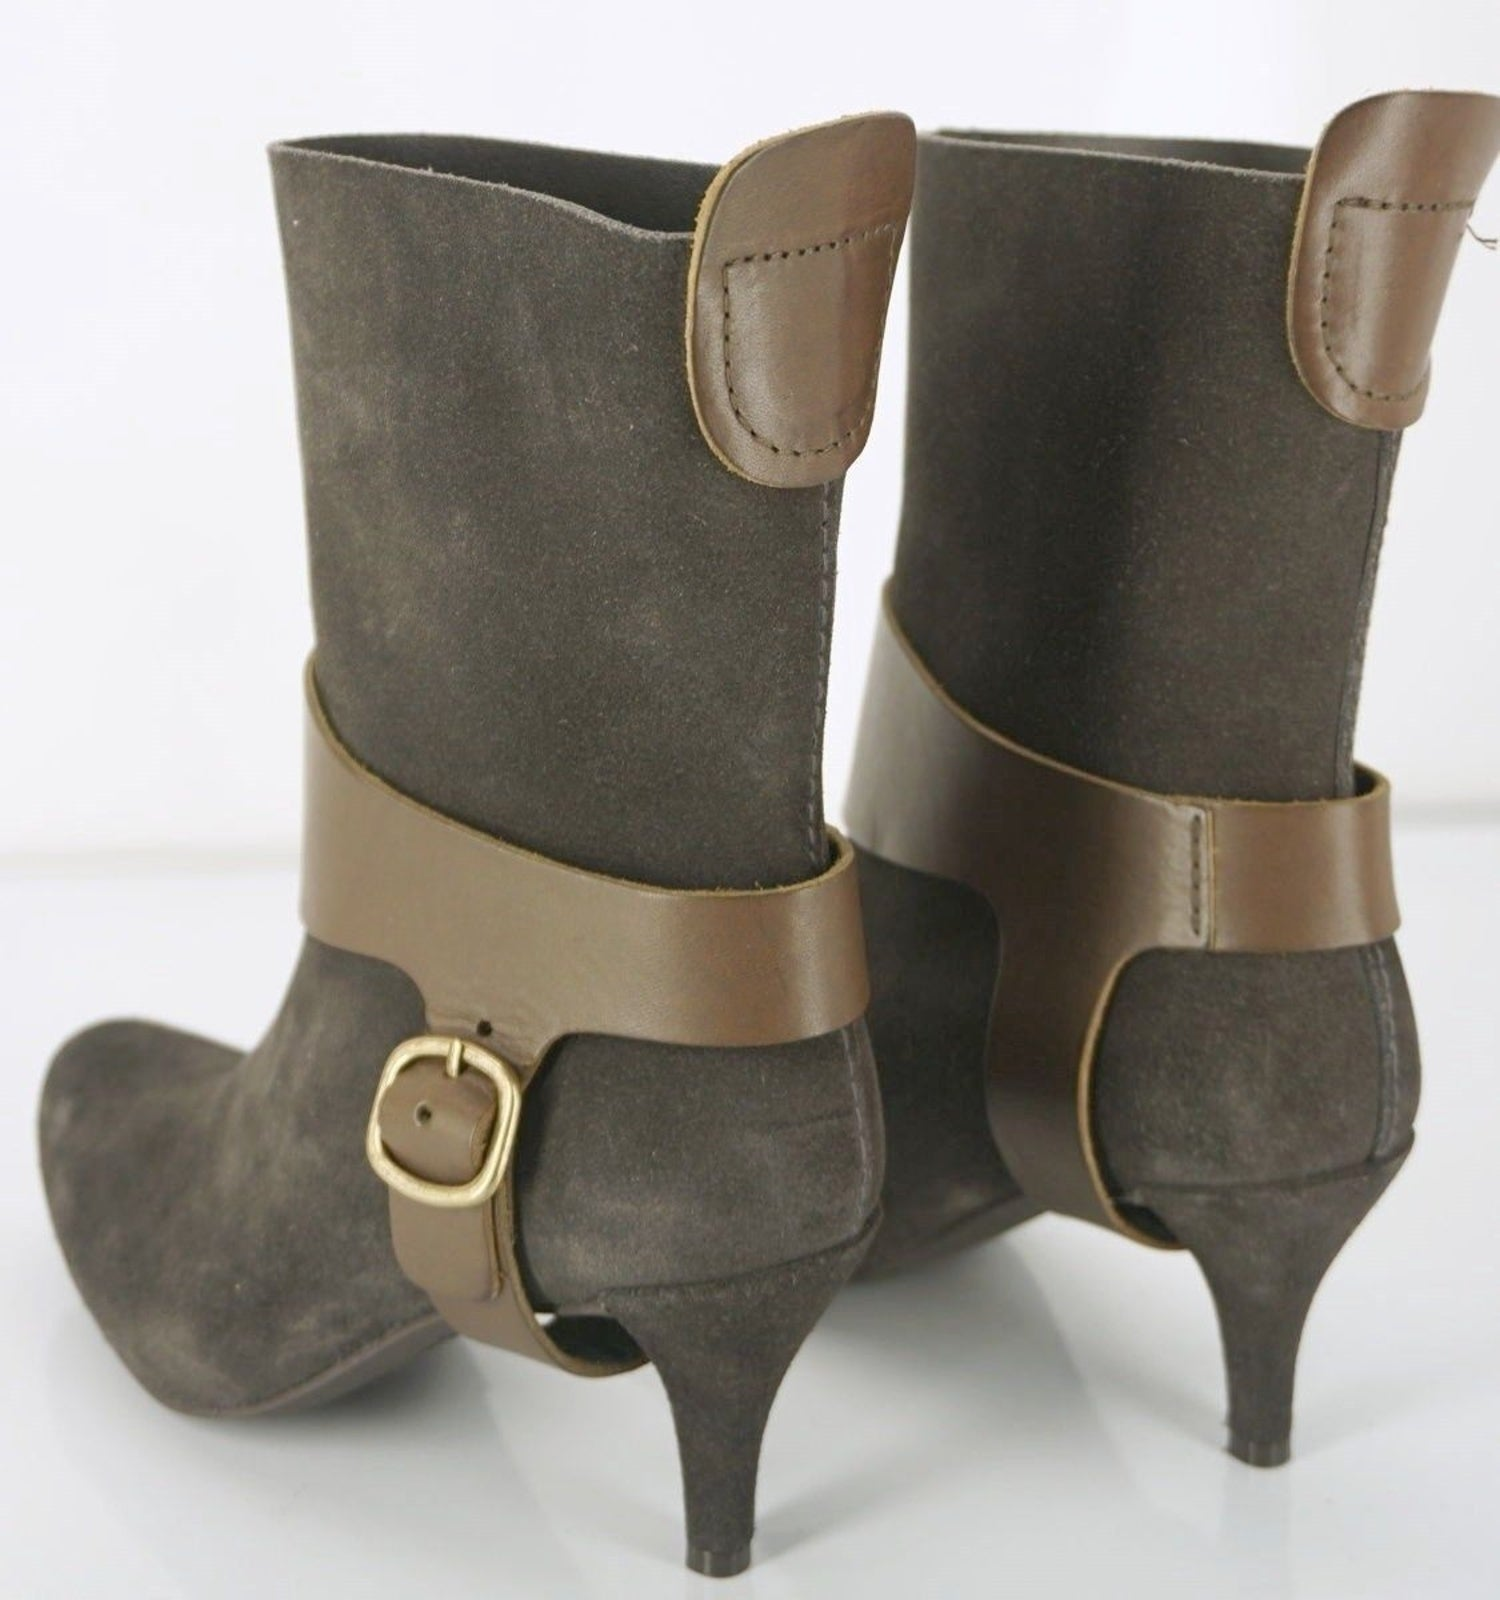 Pedro Garcia Suede Addison Removable Harness Boots Size 36 New $550 Platform